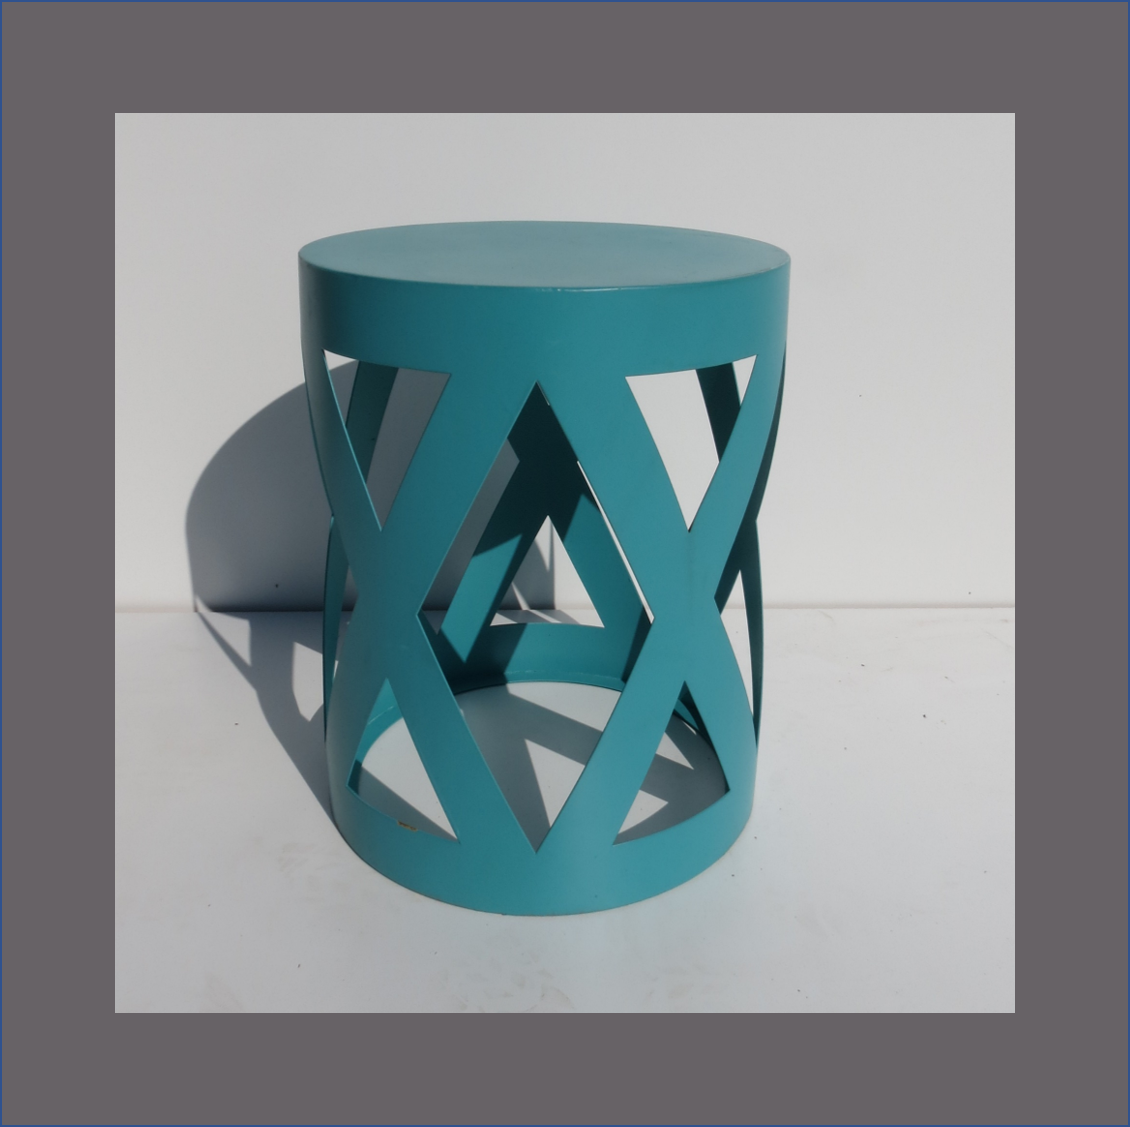 bistro-criss-cross-side-table